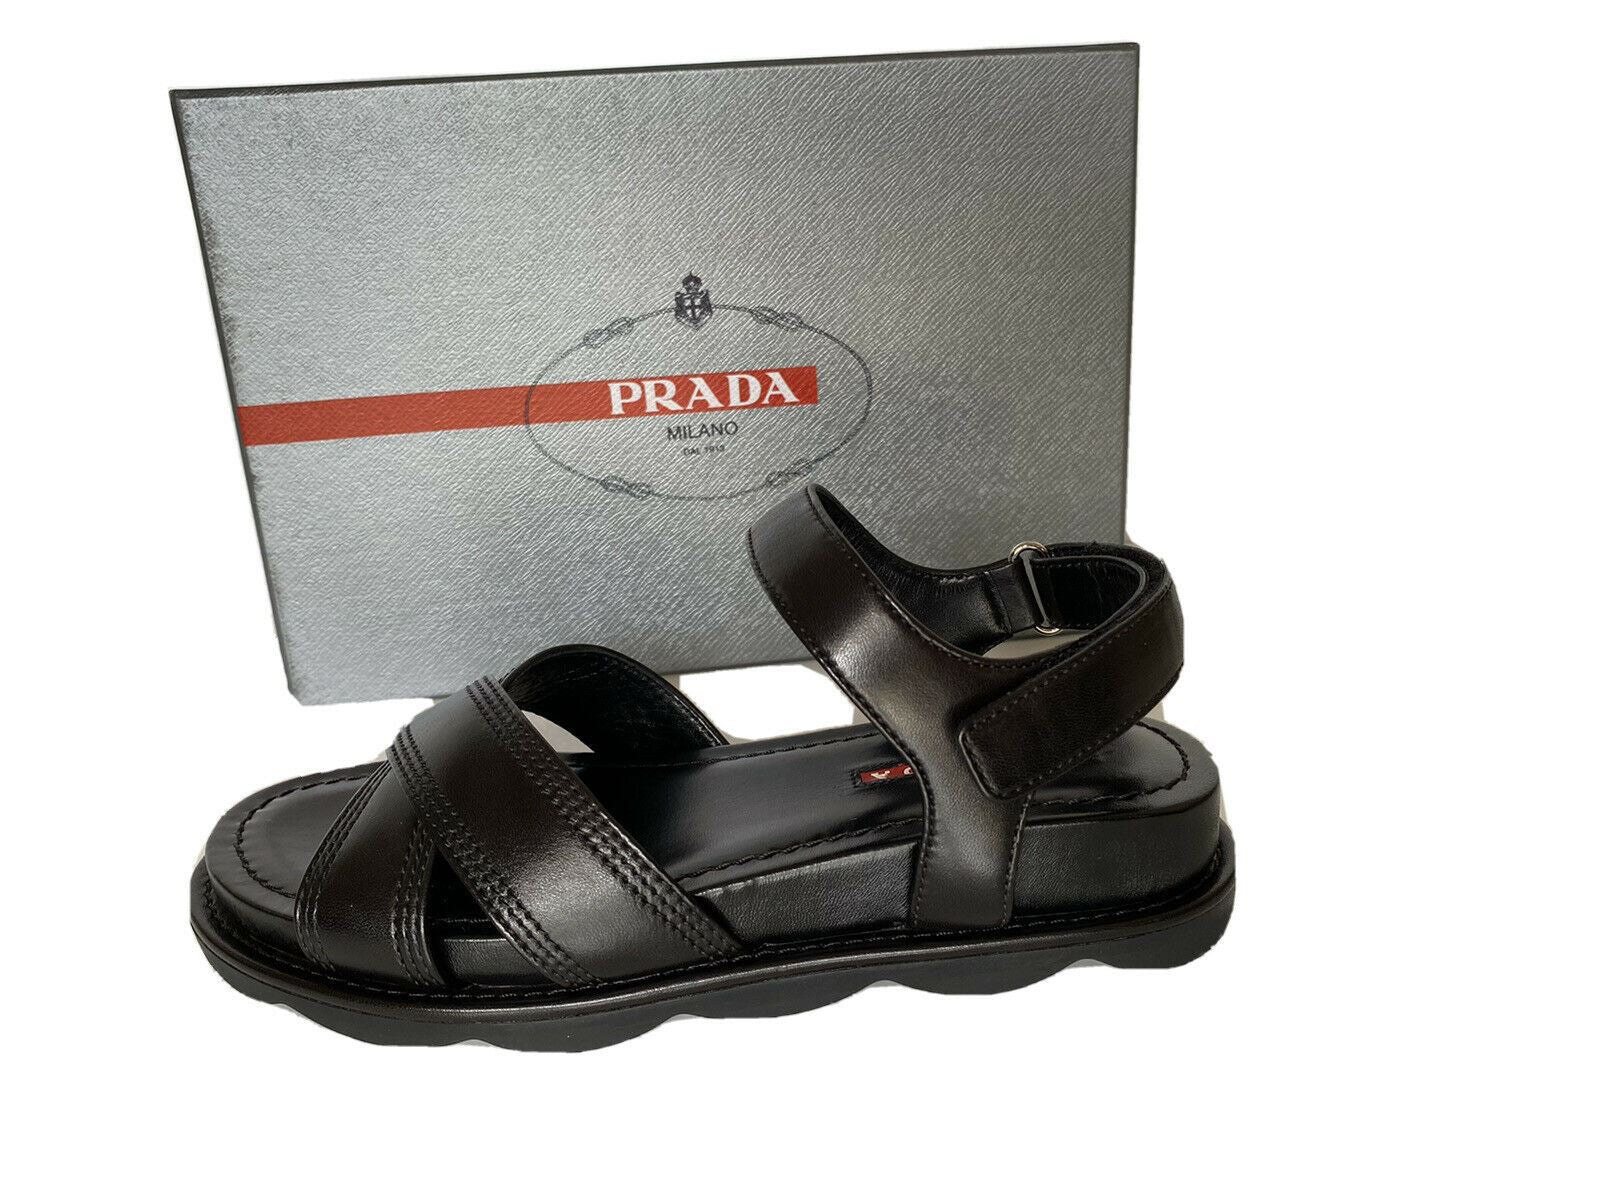 NIB $560 PRADA Women's Black Open Toe Leather Sandals 7.5 US (37.5 Euro) 3X6289